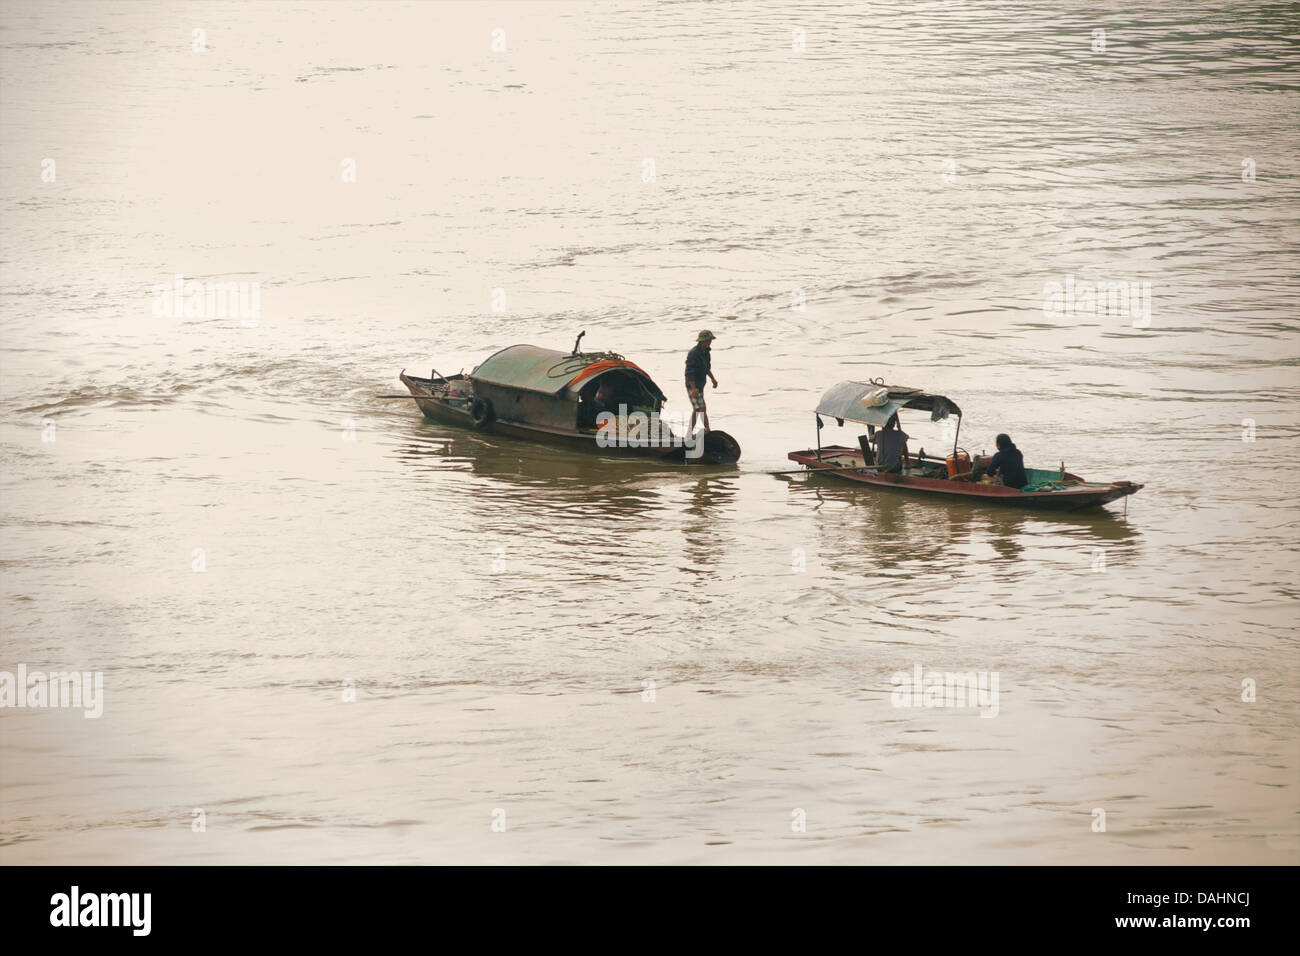 Boats on the Red River, Hanoi, Vietnam - Stock Image